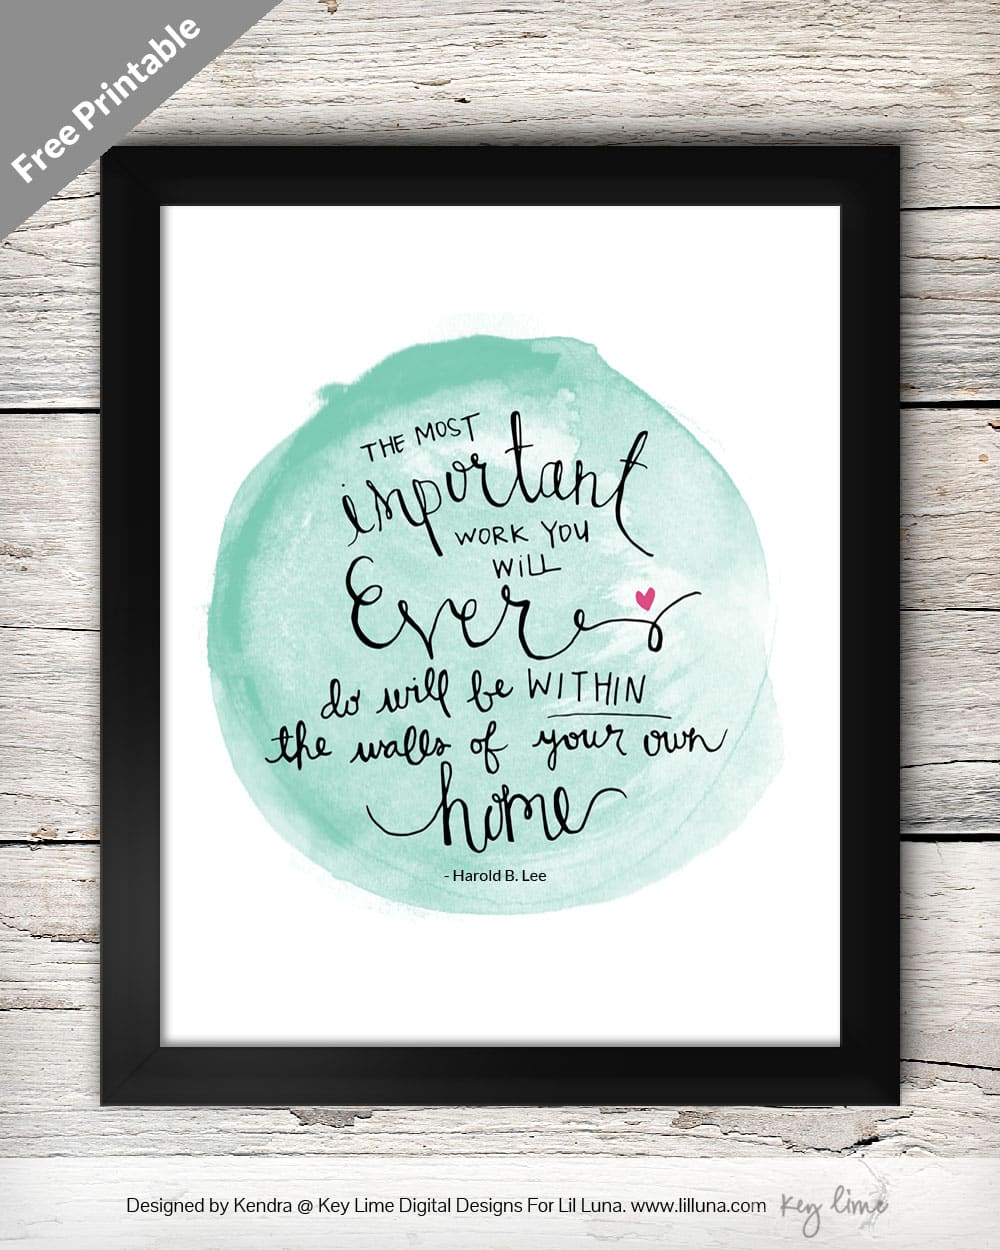 The Most Important Work You will ever do will be within the walls of your own home - LOVE this quote! Free print on { lilluna.com } Put in a frame and makes great decor!